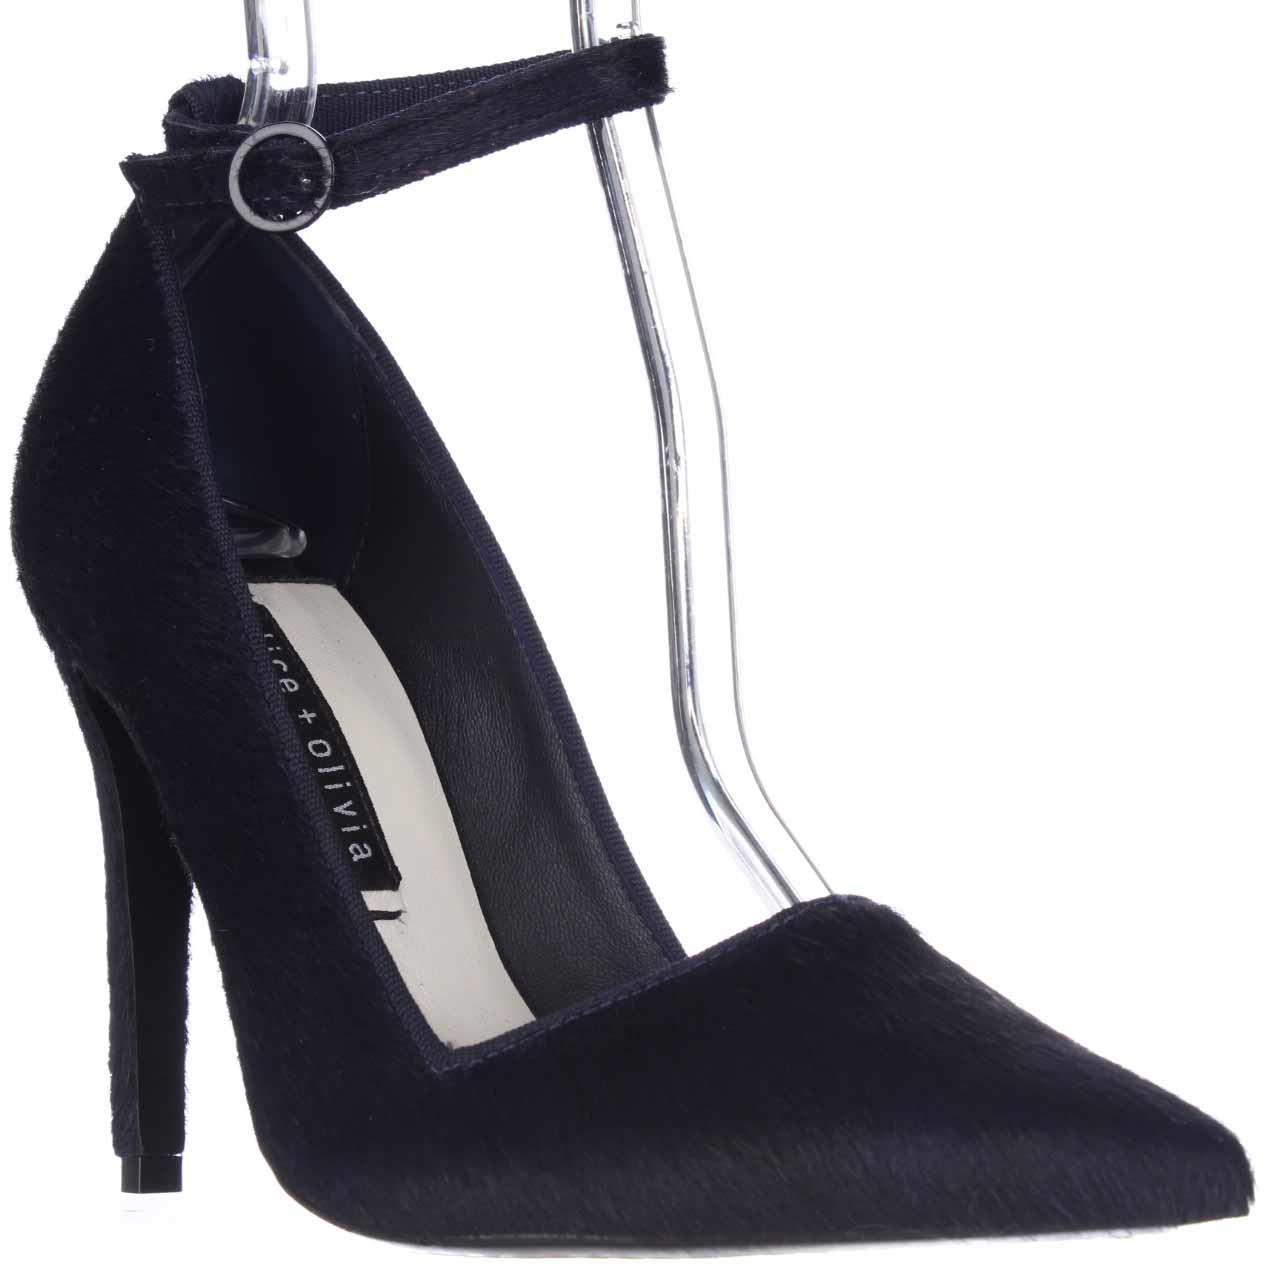 Womens Alice and Olivia Makayla Pointed Toe Ankle Strap Heels, Navy, 8.5 US / 38.5 EU